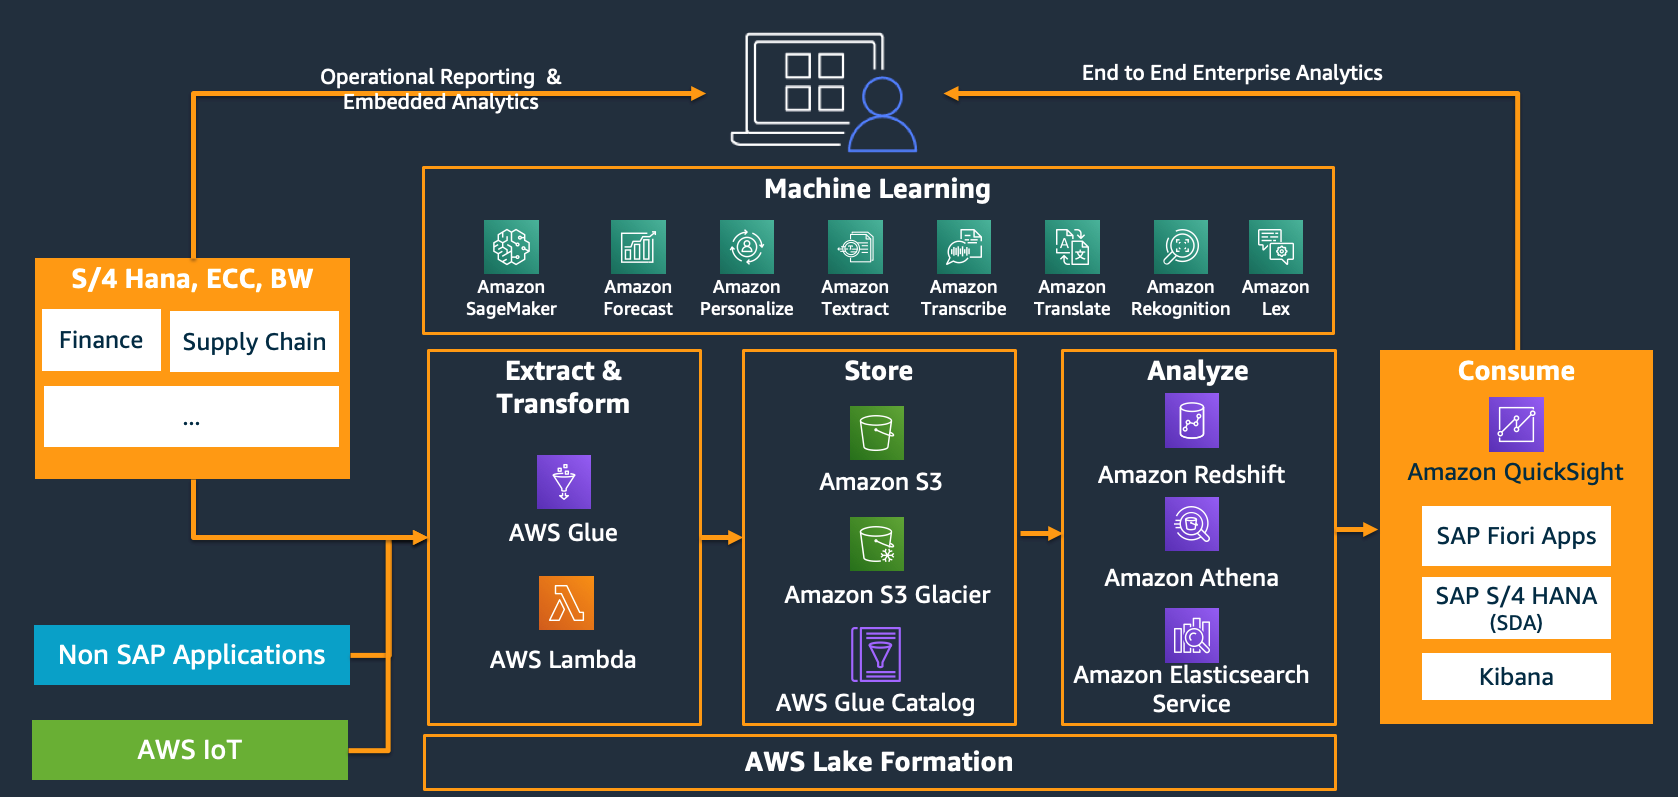 Shown here is a high level architecture for end-to-end enterprise anlytics landscape that include SAP applications running on AWS along with DataLakes and Analytics powered by AWS services.